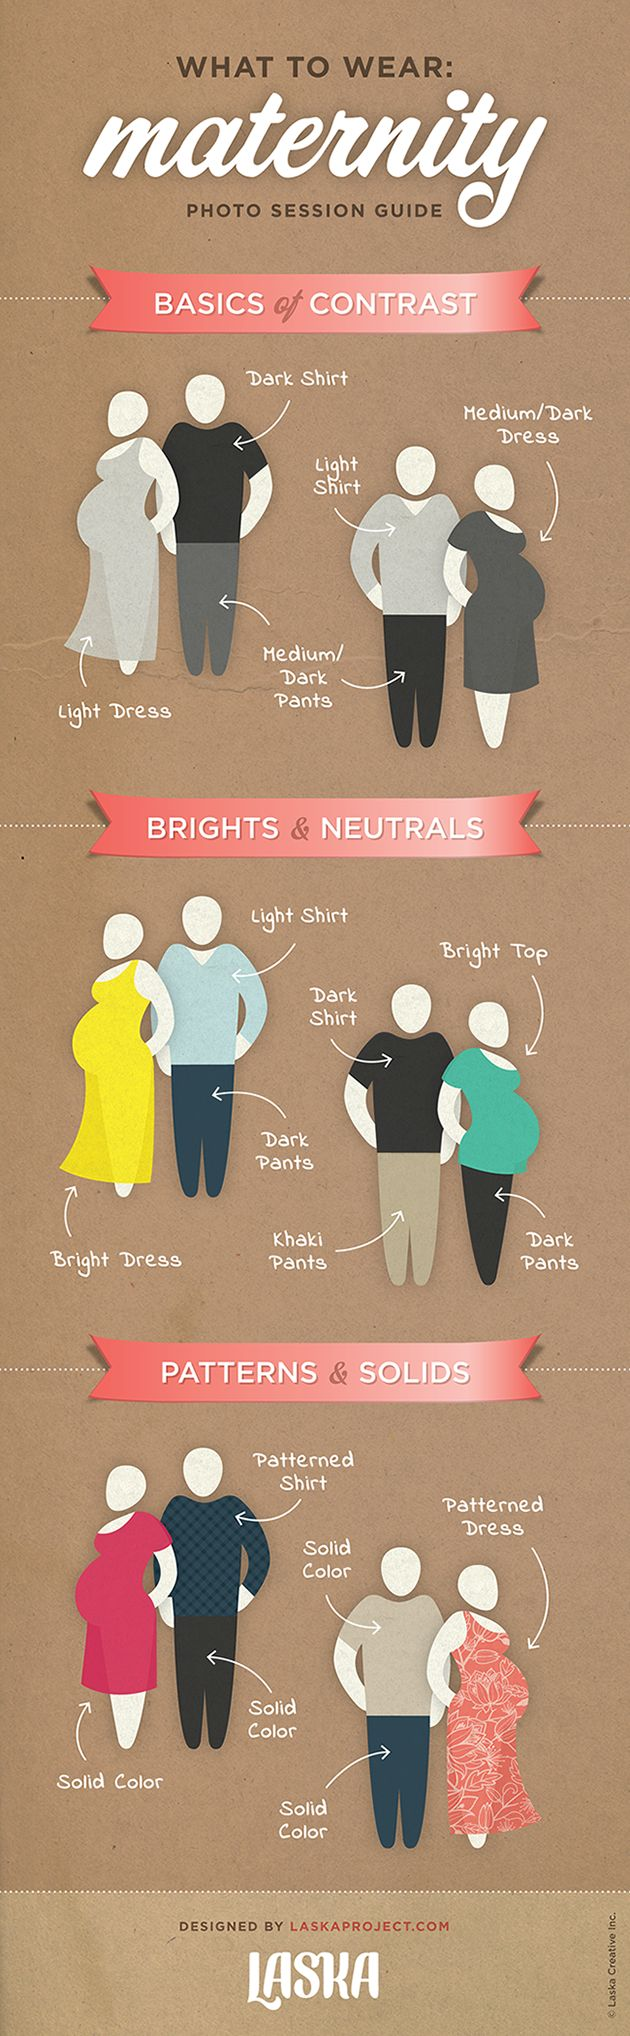 What to Wear to a Maternity Photo Session.